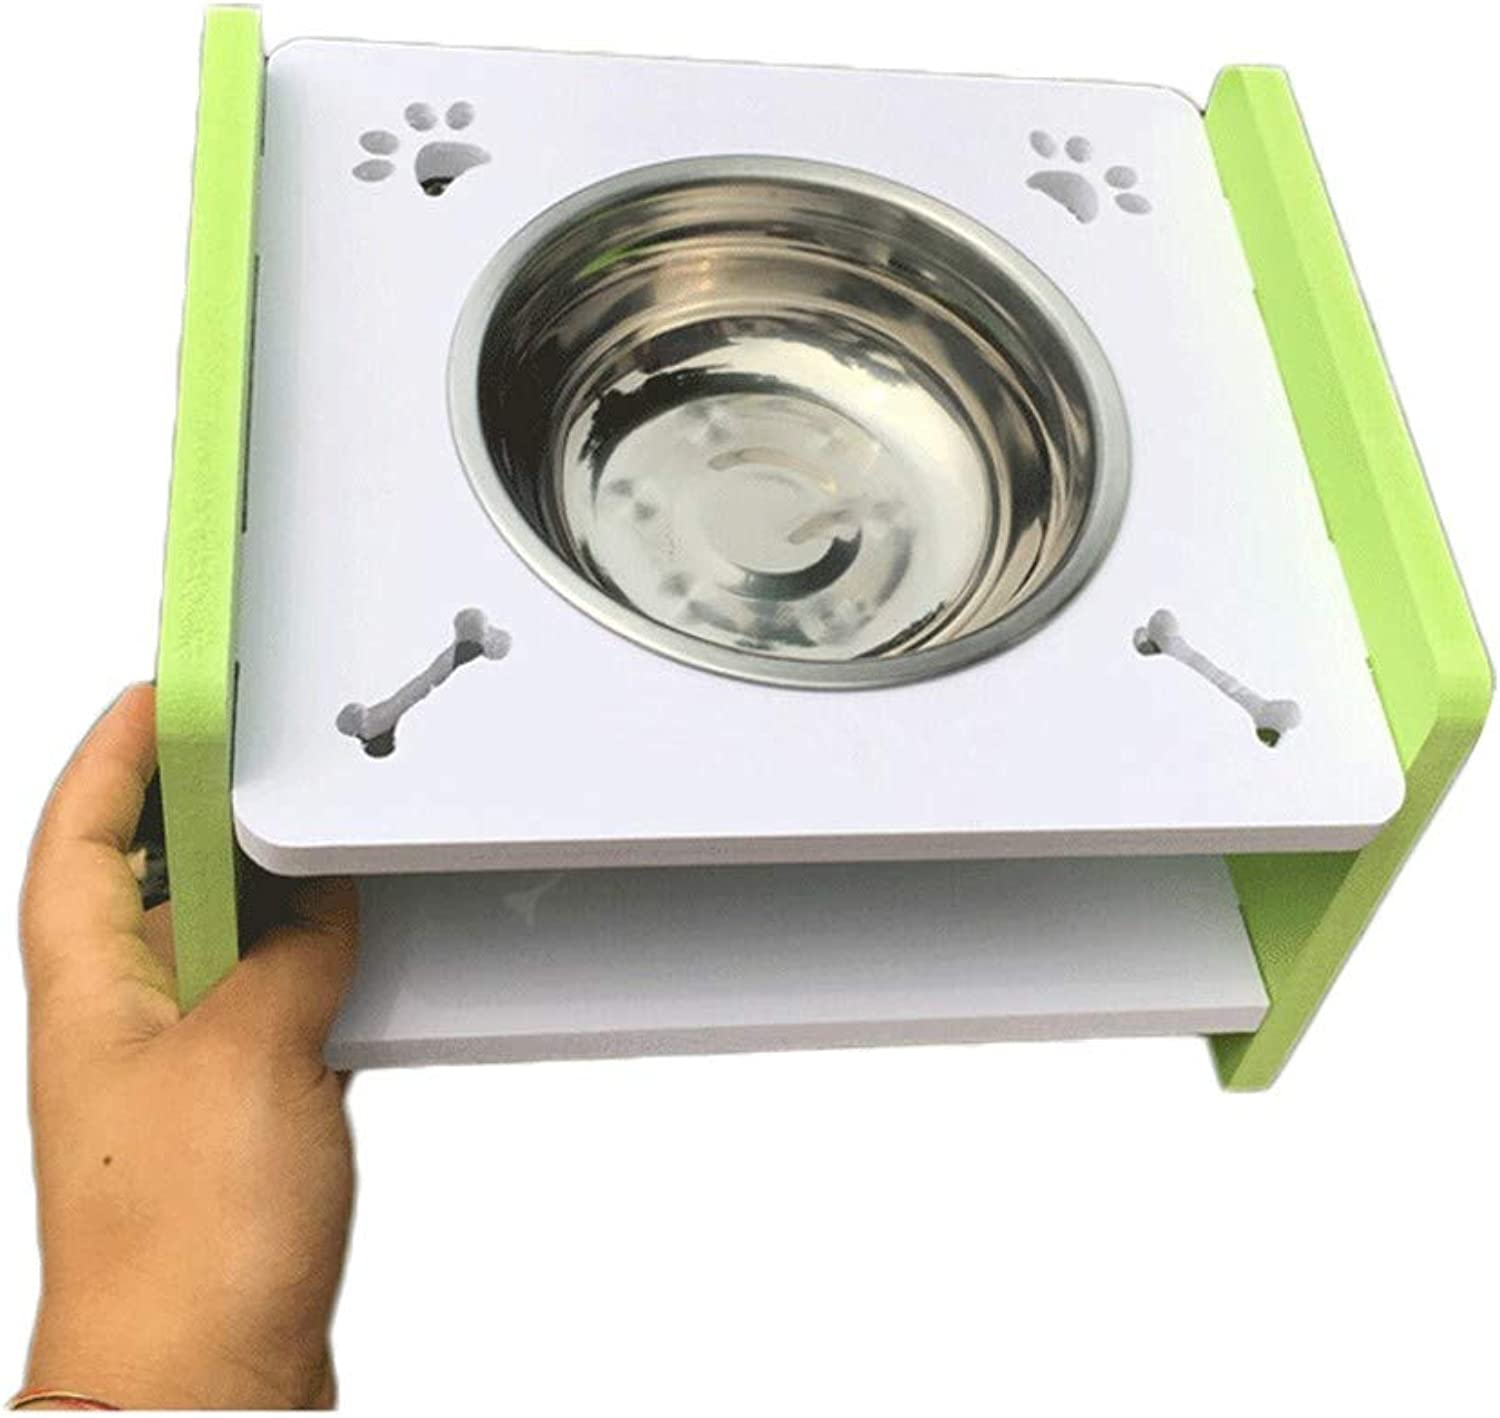 Pet feeder,Multifunction Cat and dog Easy to clean Easy to carry Nonslip Solid and durable Natural Healthy